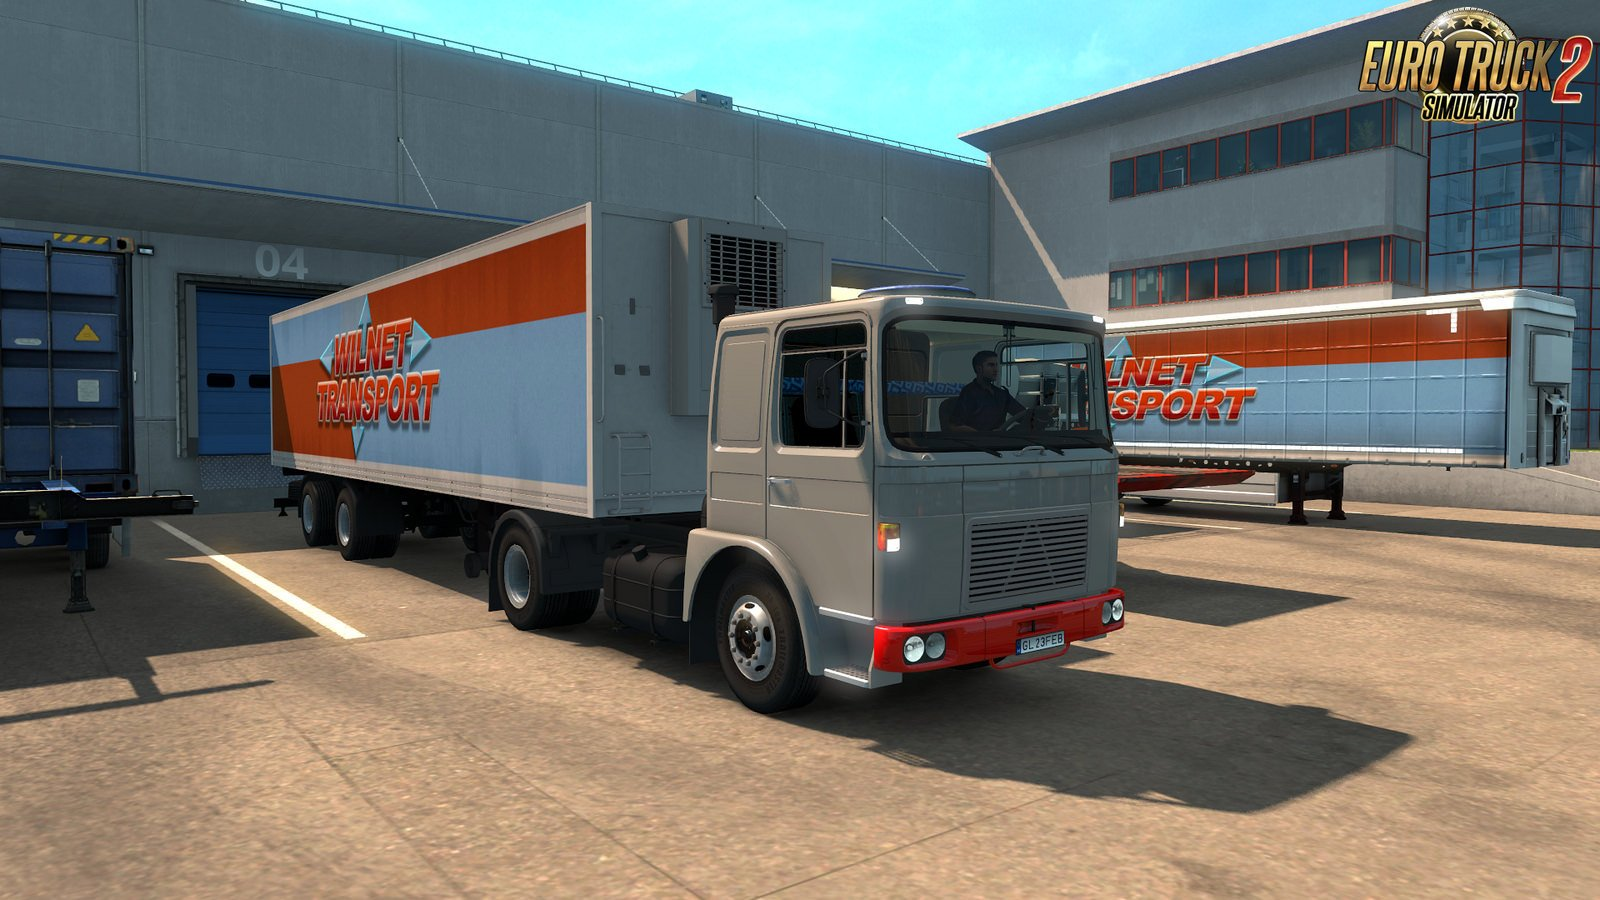 ROMAN Diesel v1.0 by MADster for Ets2